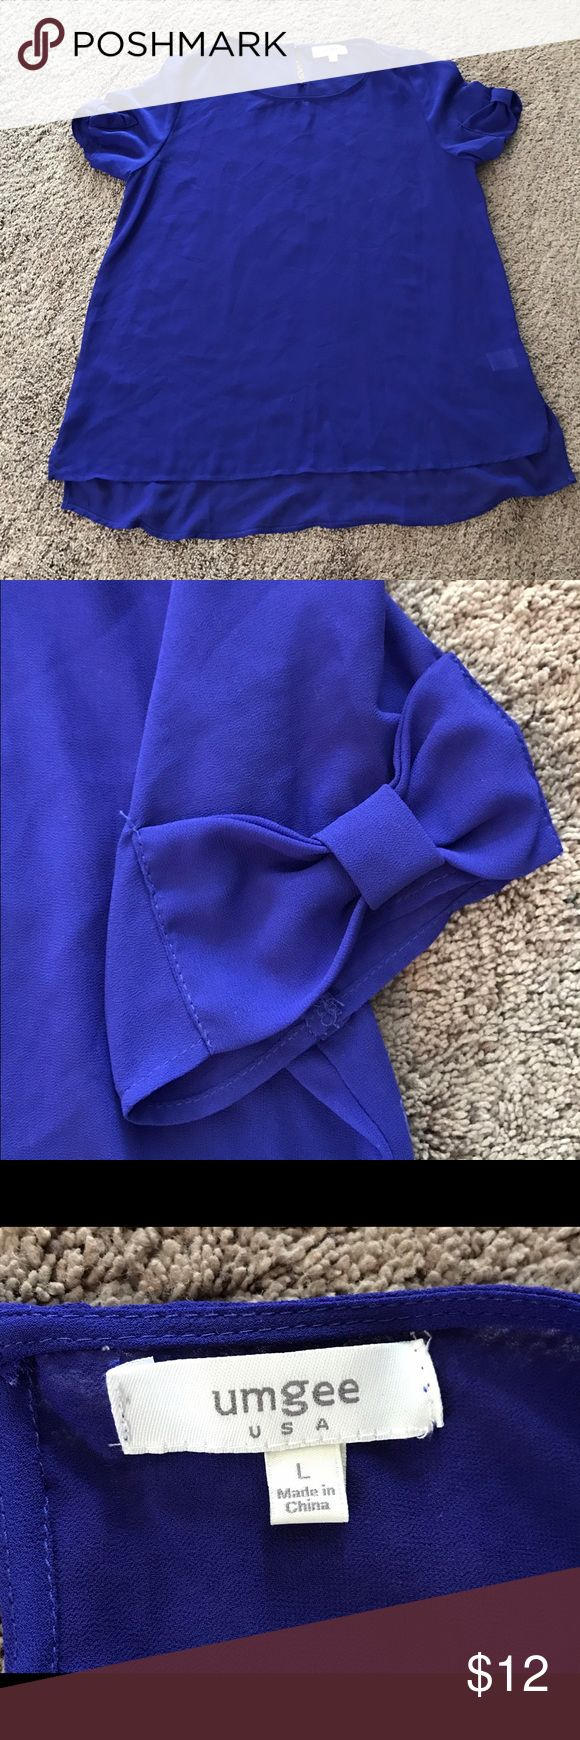 Sheer Blue Top With Bows on Sleeves Sheer blue short-sleeved top with a bow on each sleeve. Cute loose fit. Worn once, in excellent condition. No trades. Comment with questions :) Umgee Tops Blouses